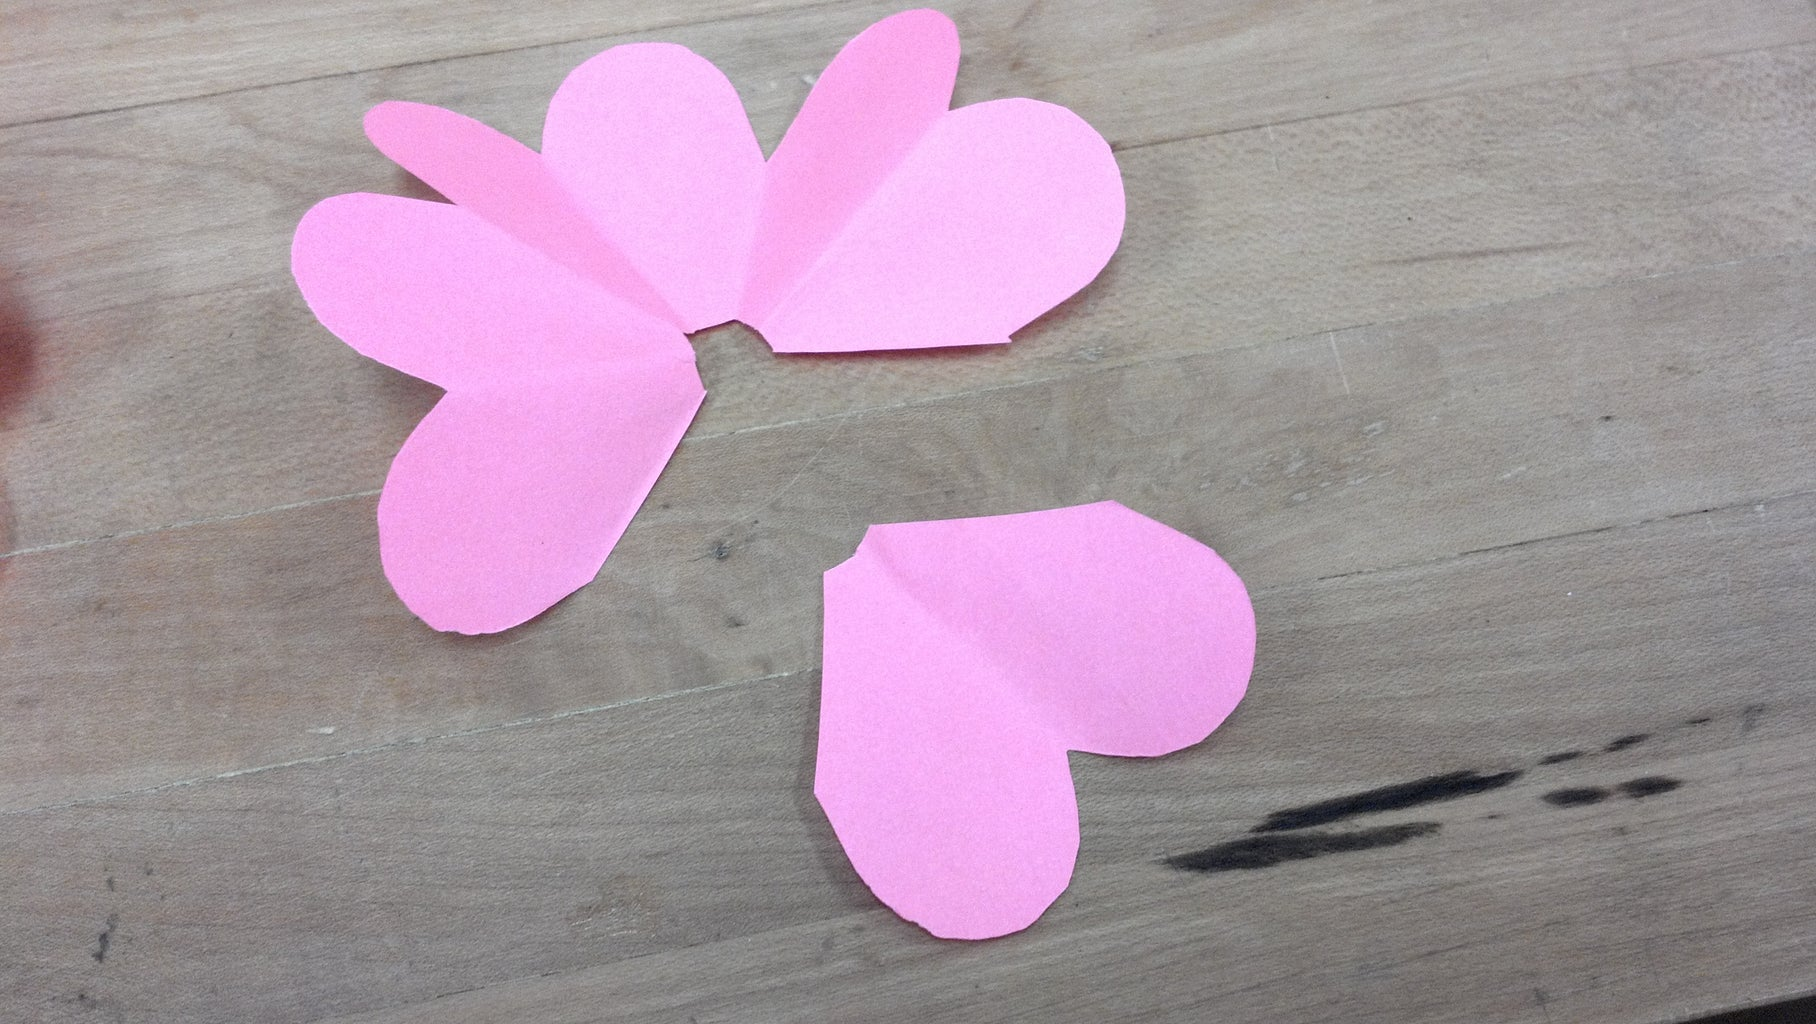 Cutting Out the Petals and Preparing to Create Flowers and Petals